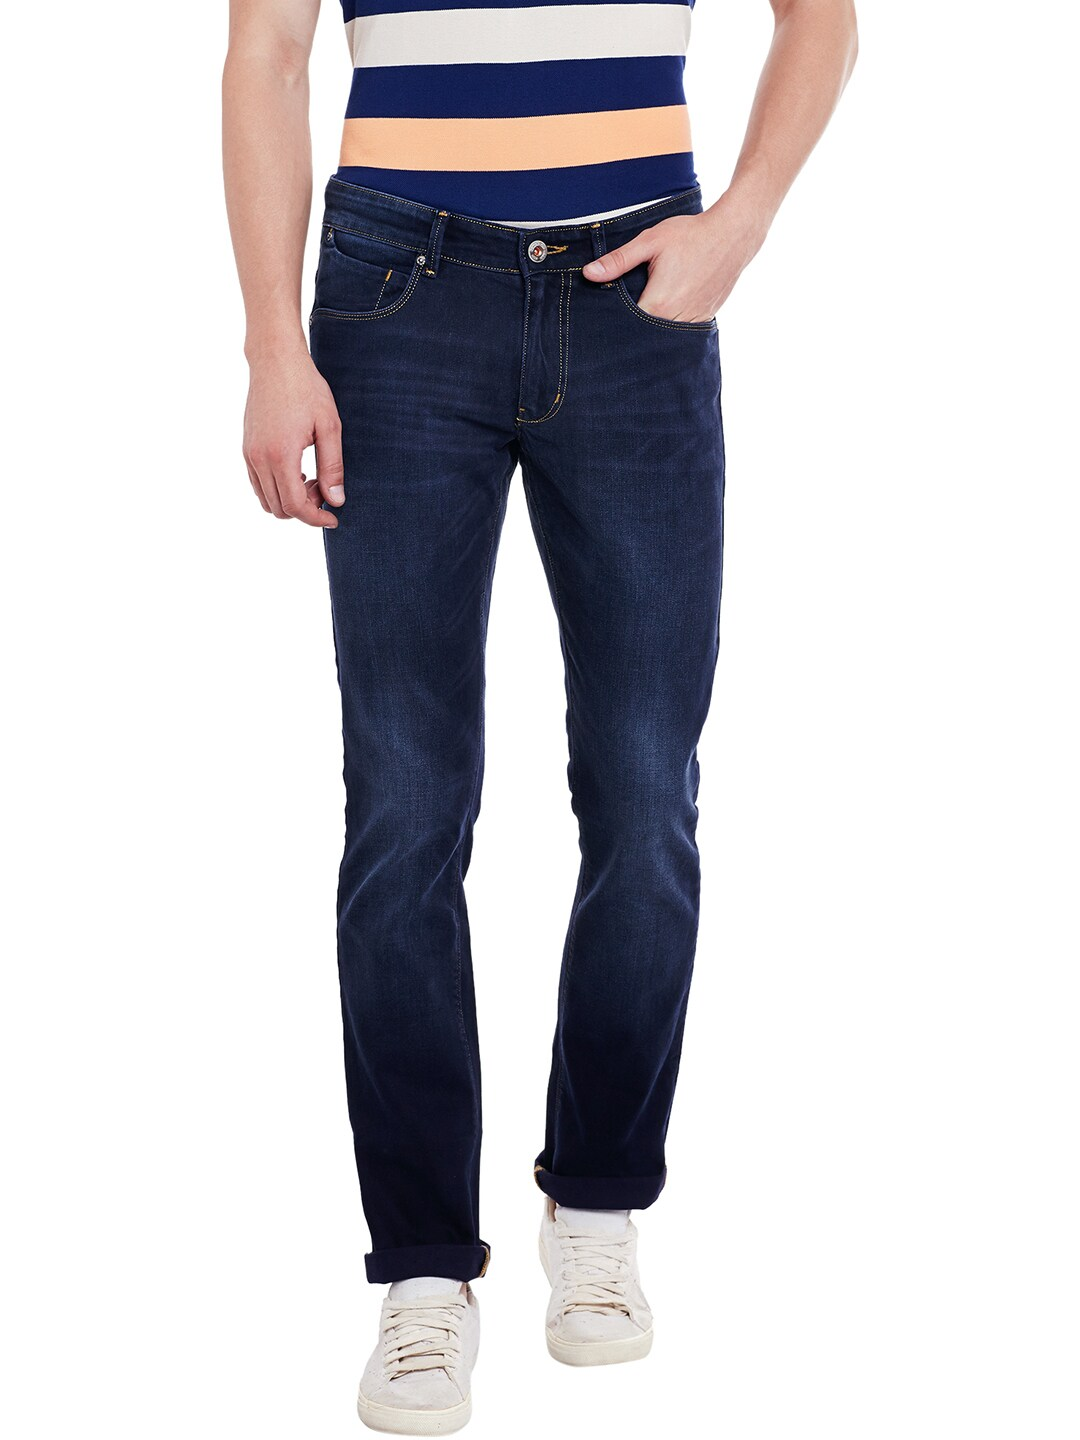 Numero Uno Men Navy Blue Morice Slim Fit Low-Rise Clean Look Jeans image